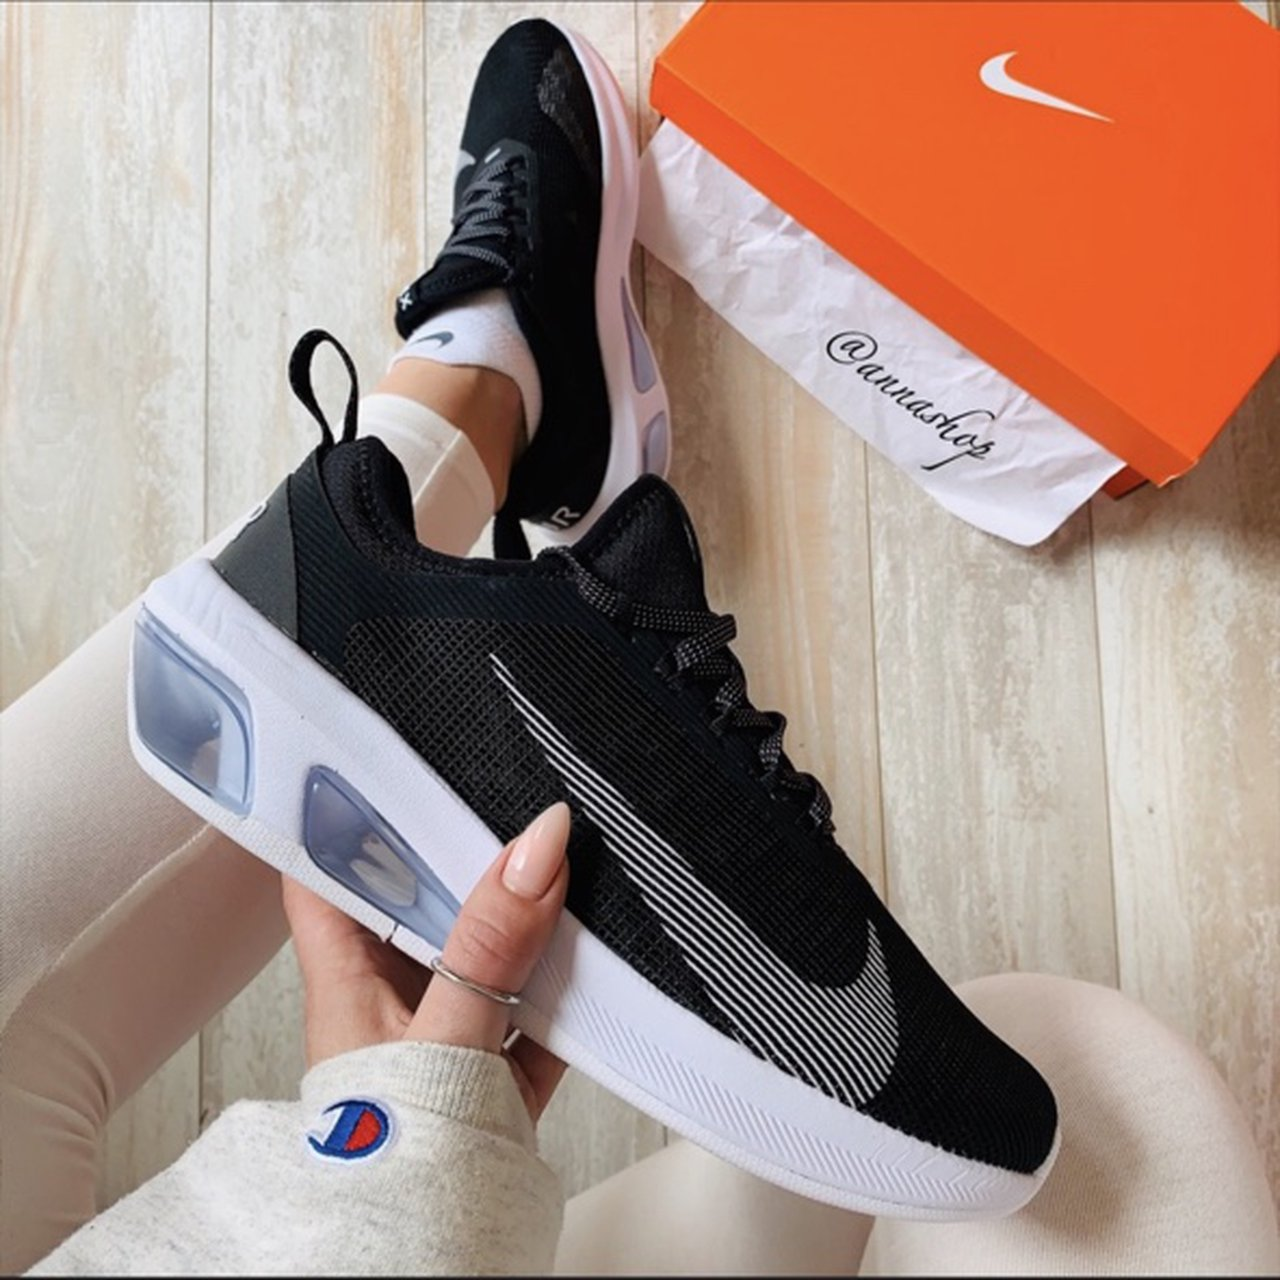 Fiesta Aprovechar bueno  NWT Nike Air Max FLY Black Brand new with box.... - Depop